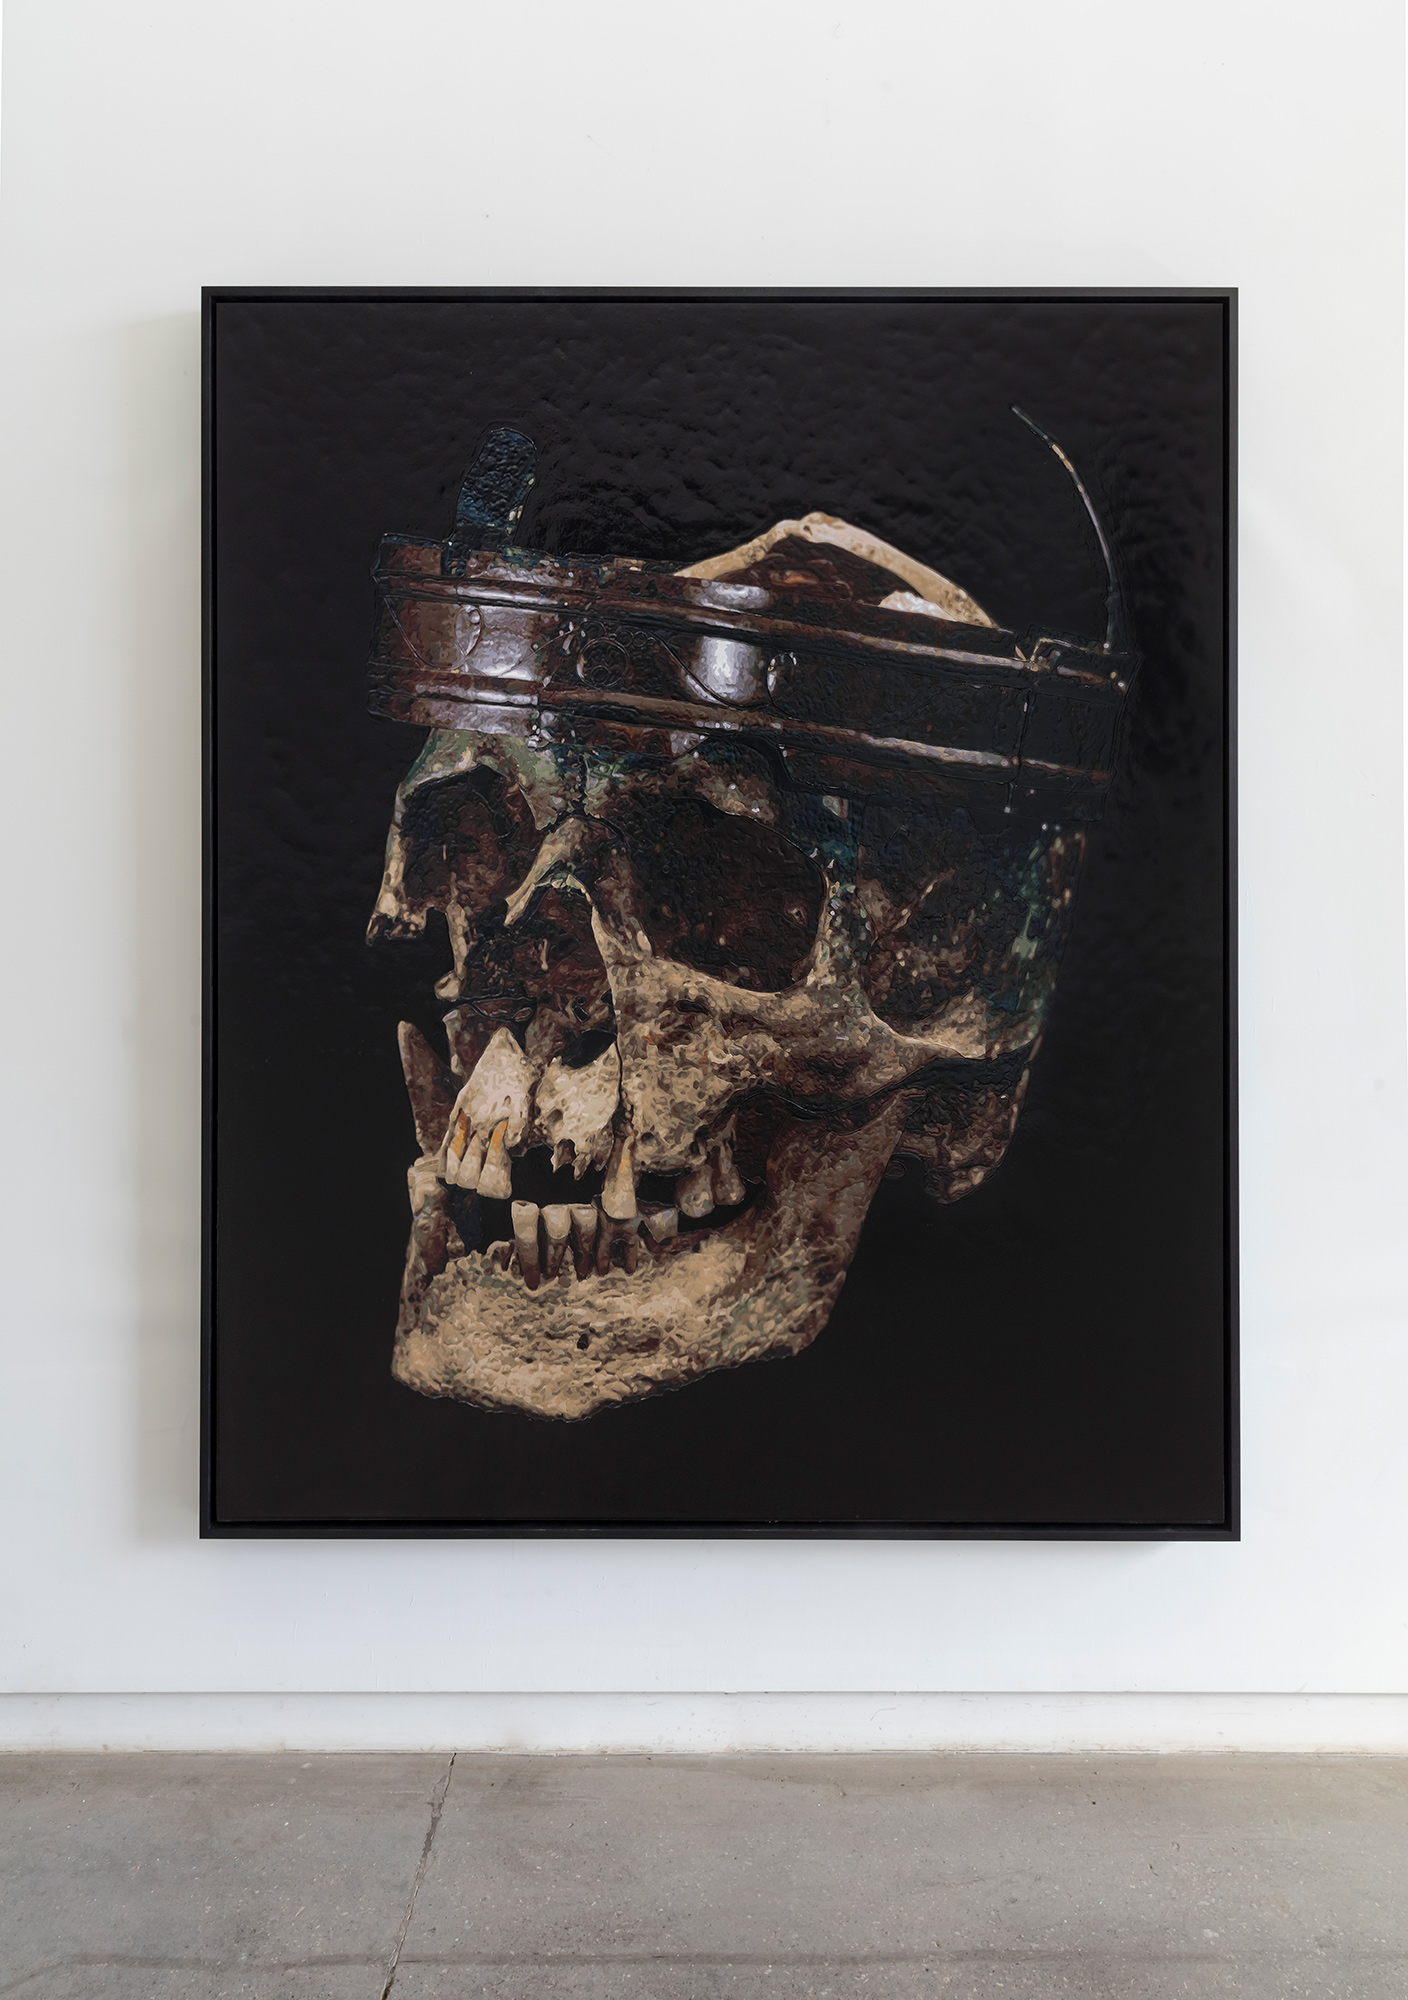 Dorian FitzGerald,  Iron Age Skull and Crown (Warrior or Druid), Kent, United Kingdo m, 2017, acrylic on canvas mounted to board, 78 x 68 inches